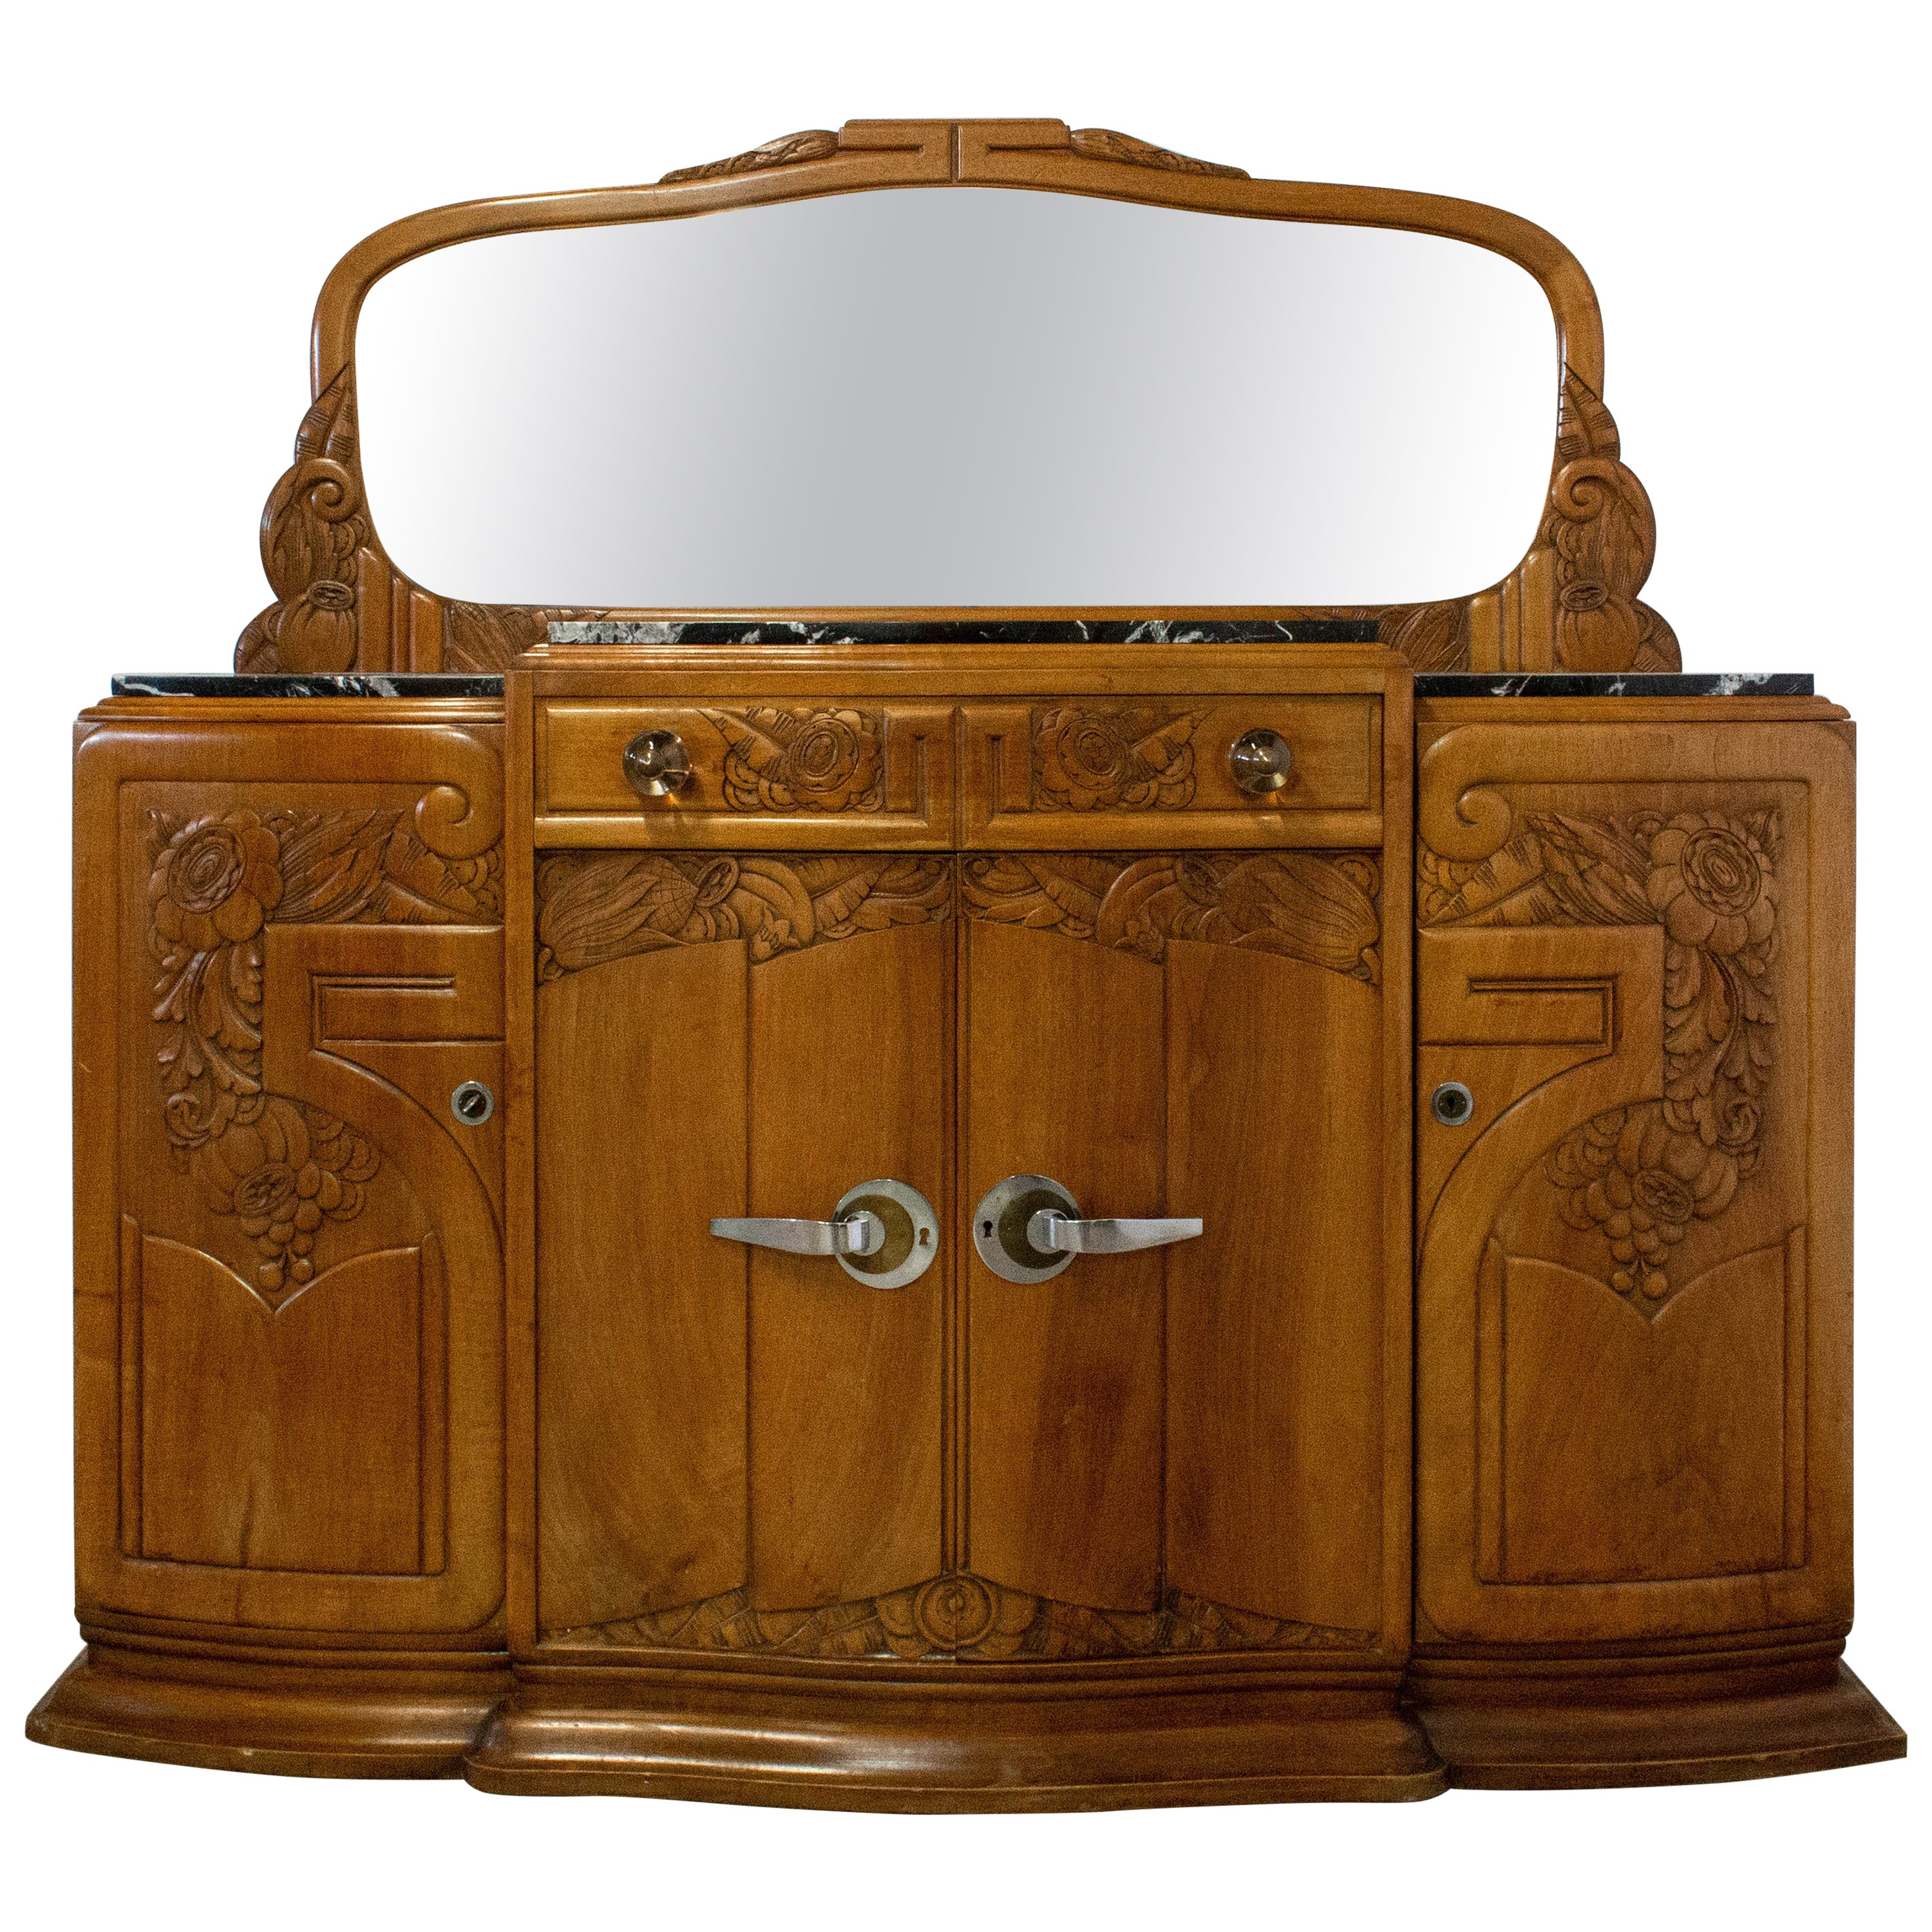 Art Deco Credenza Sideboard Marble-Top French Dresser Buffet, circa 1930